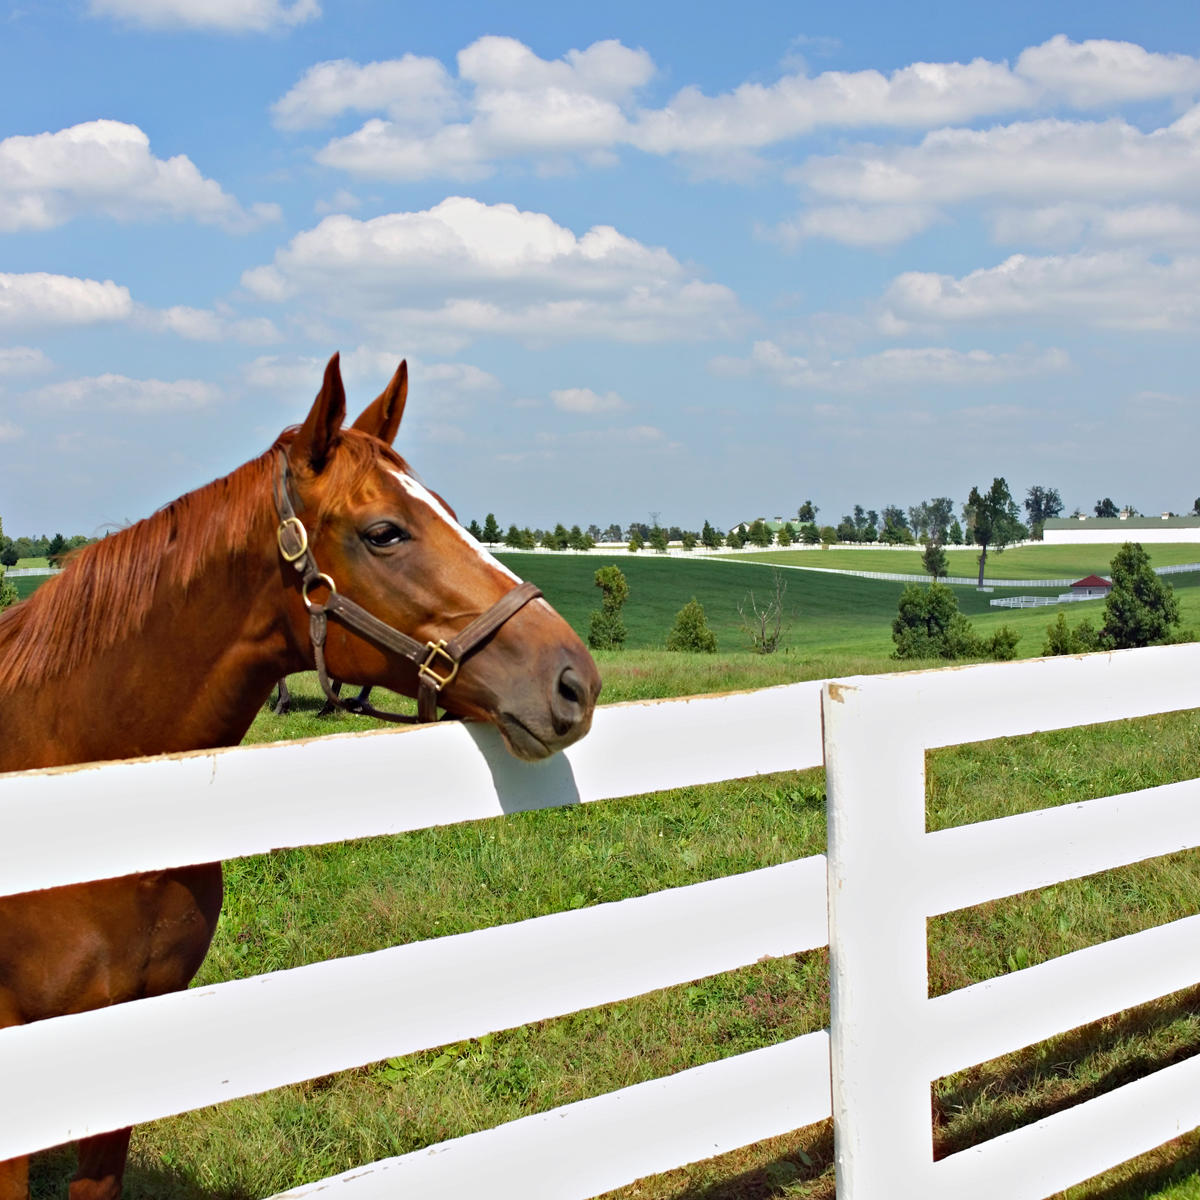 Horse Farm Tours in the Horse Capital of the World